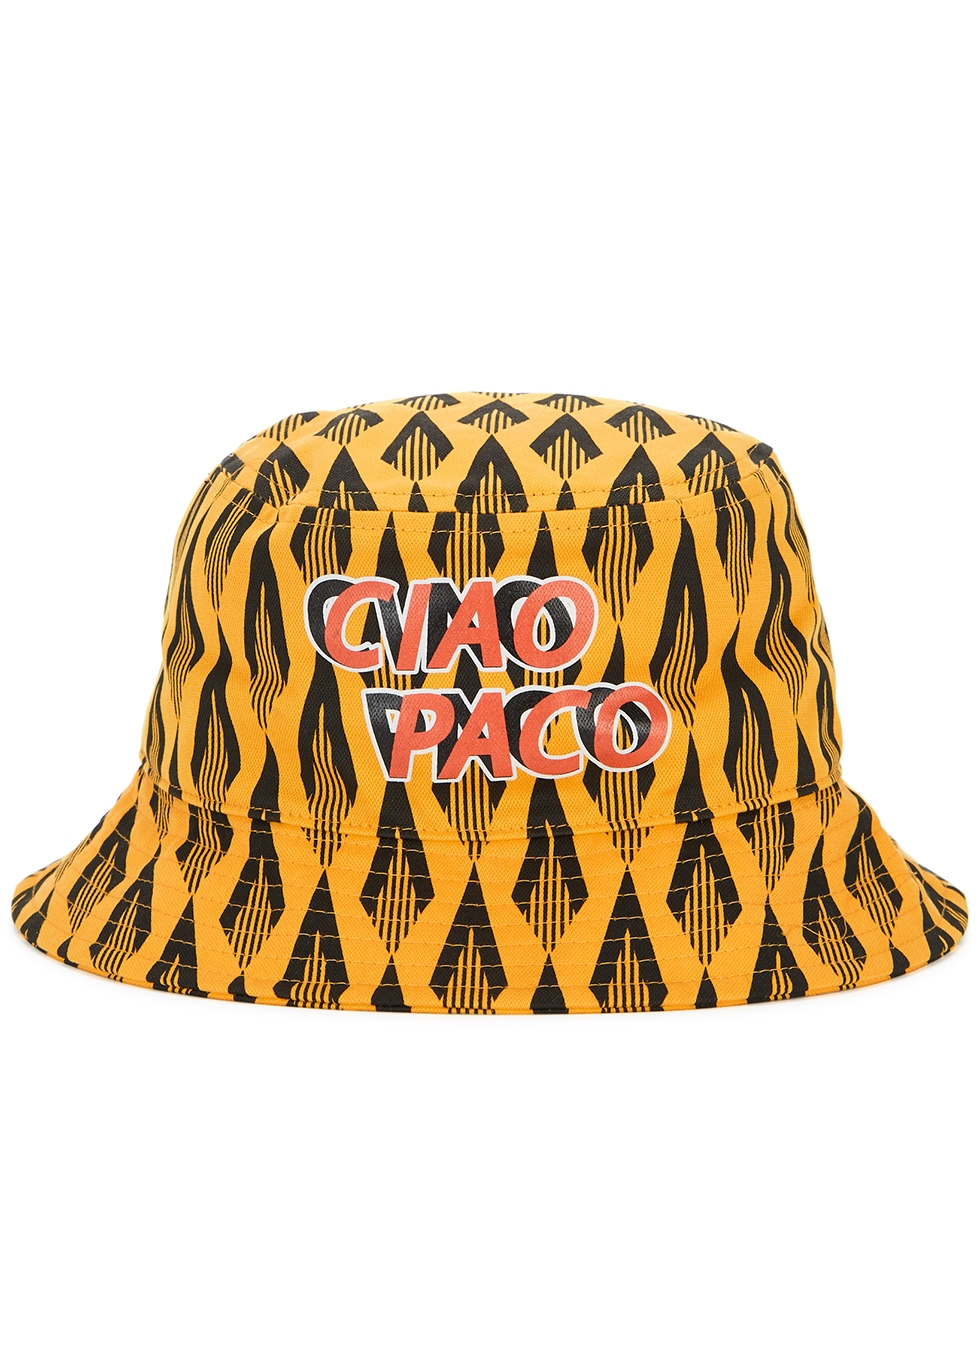 Ciao Paco printed cotton bucket hat